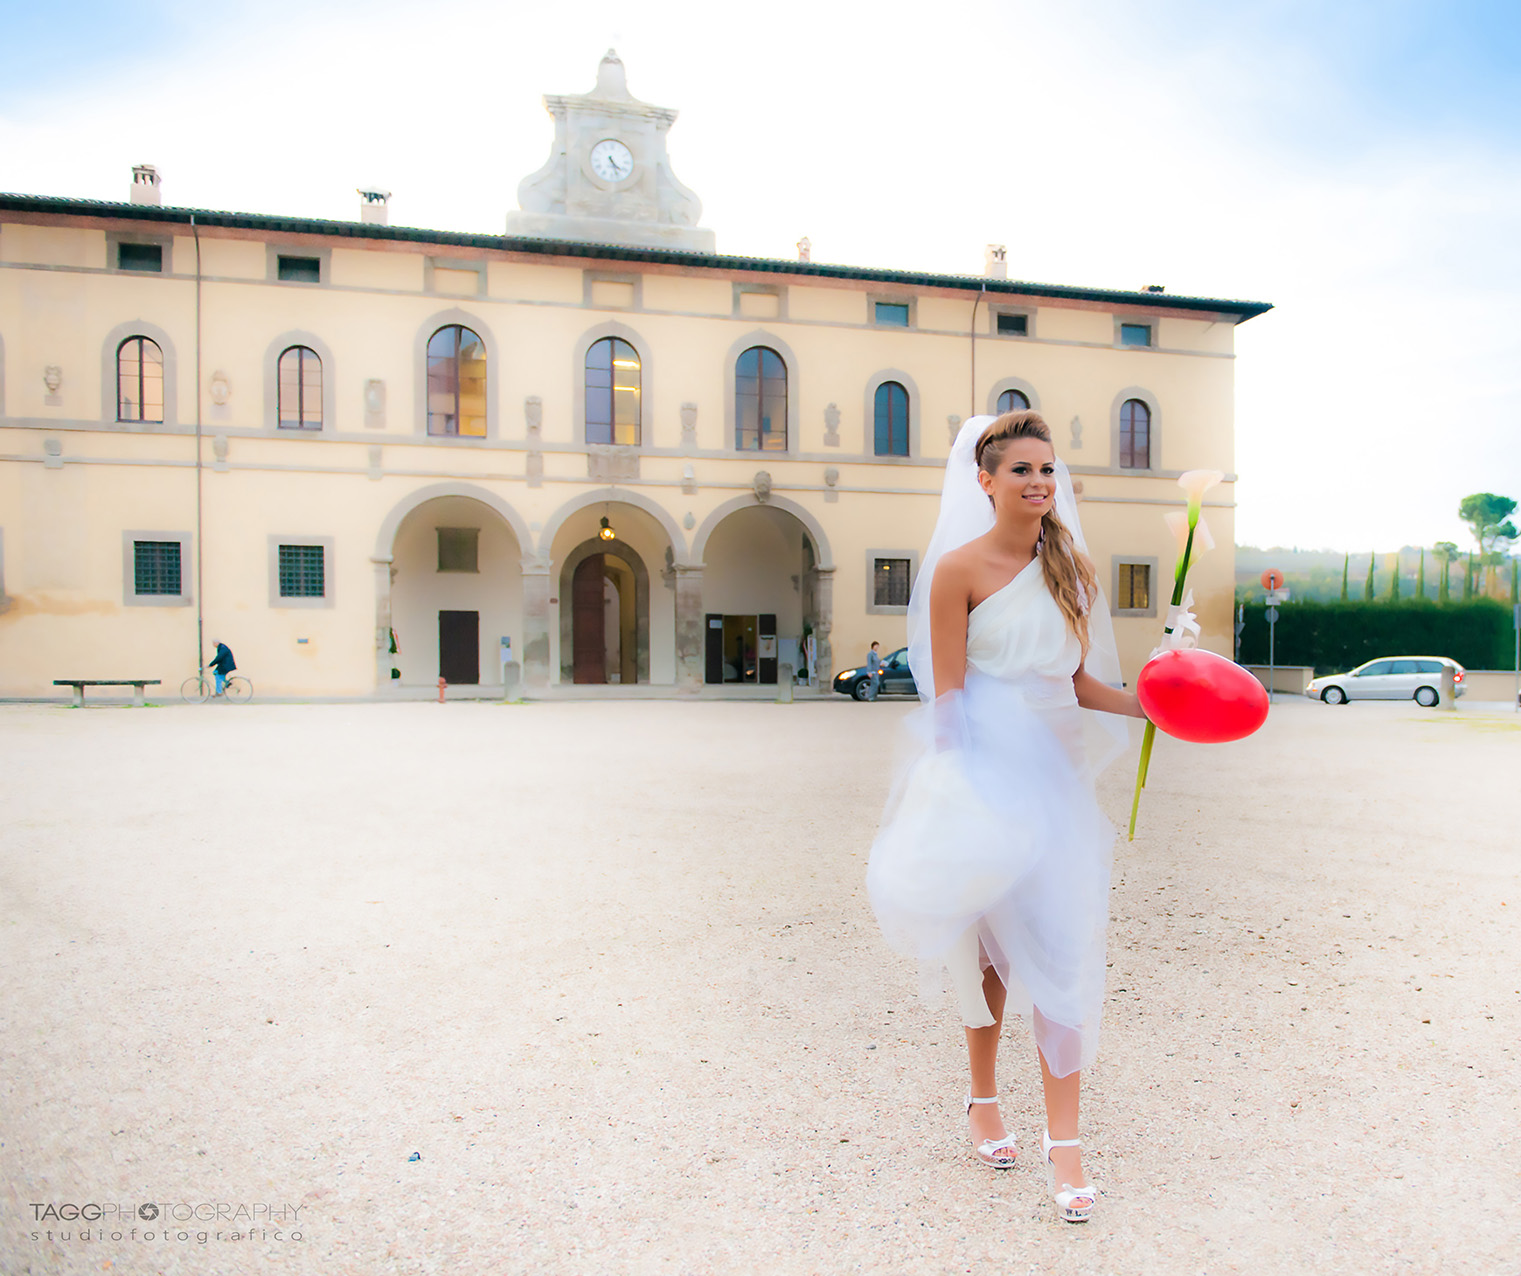 Wedding in Romagna a Terra del Sole | Foto Matrimonio